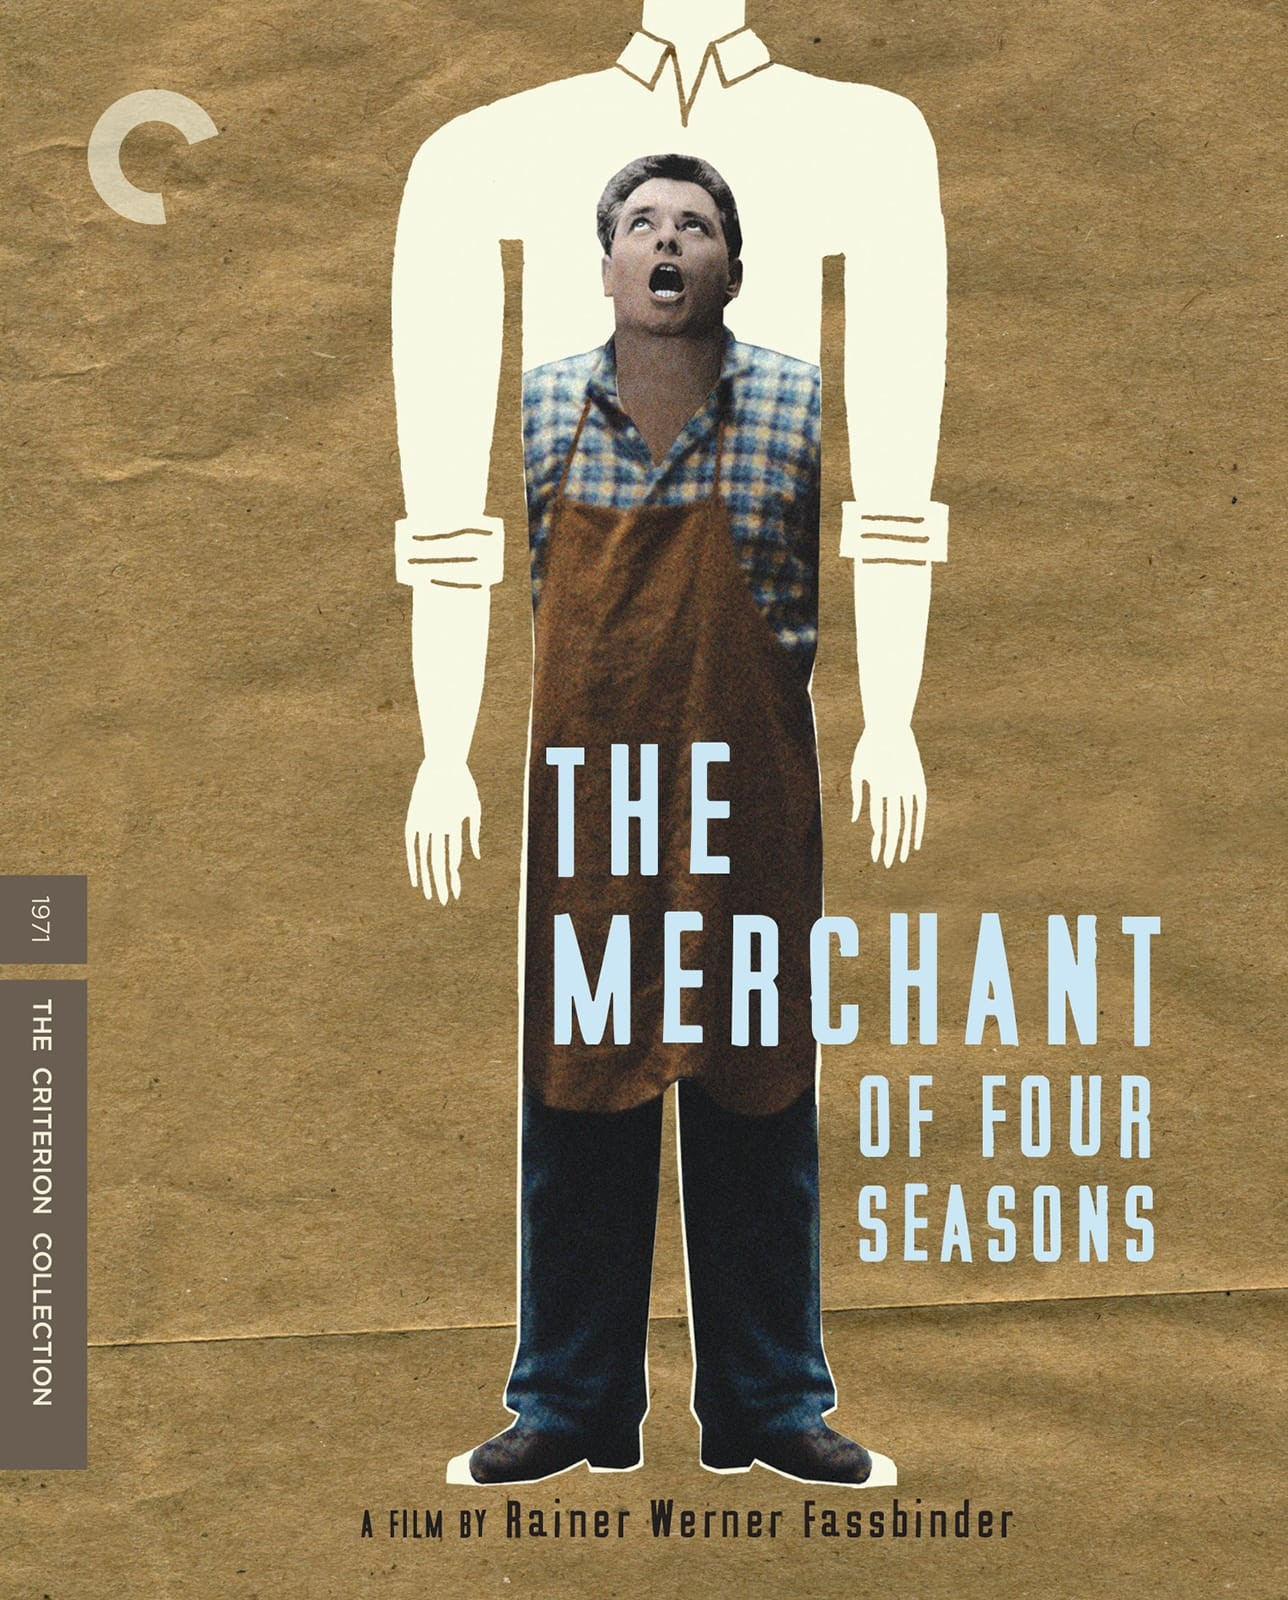 The Merchant of Four Seasons